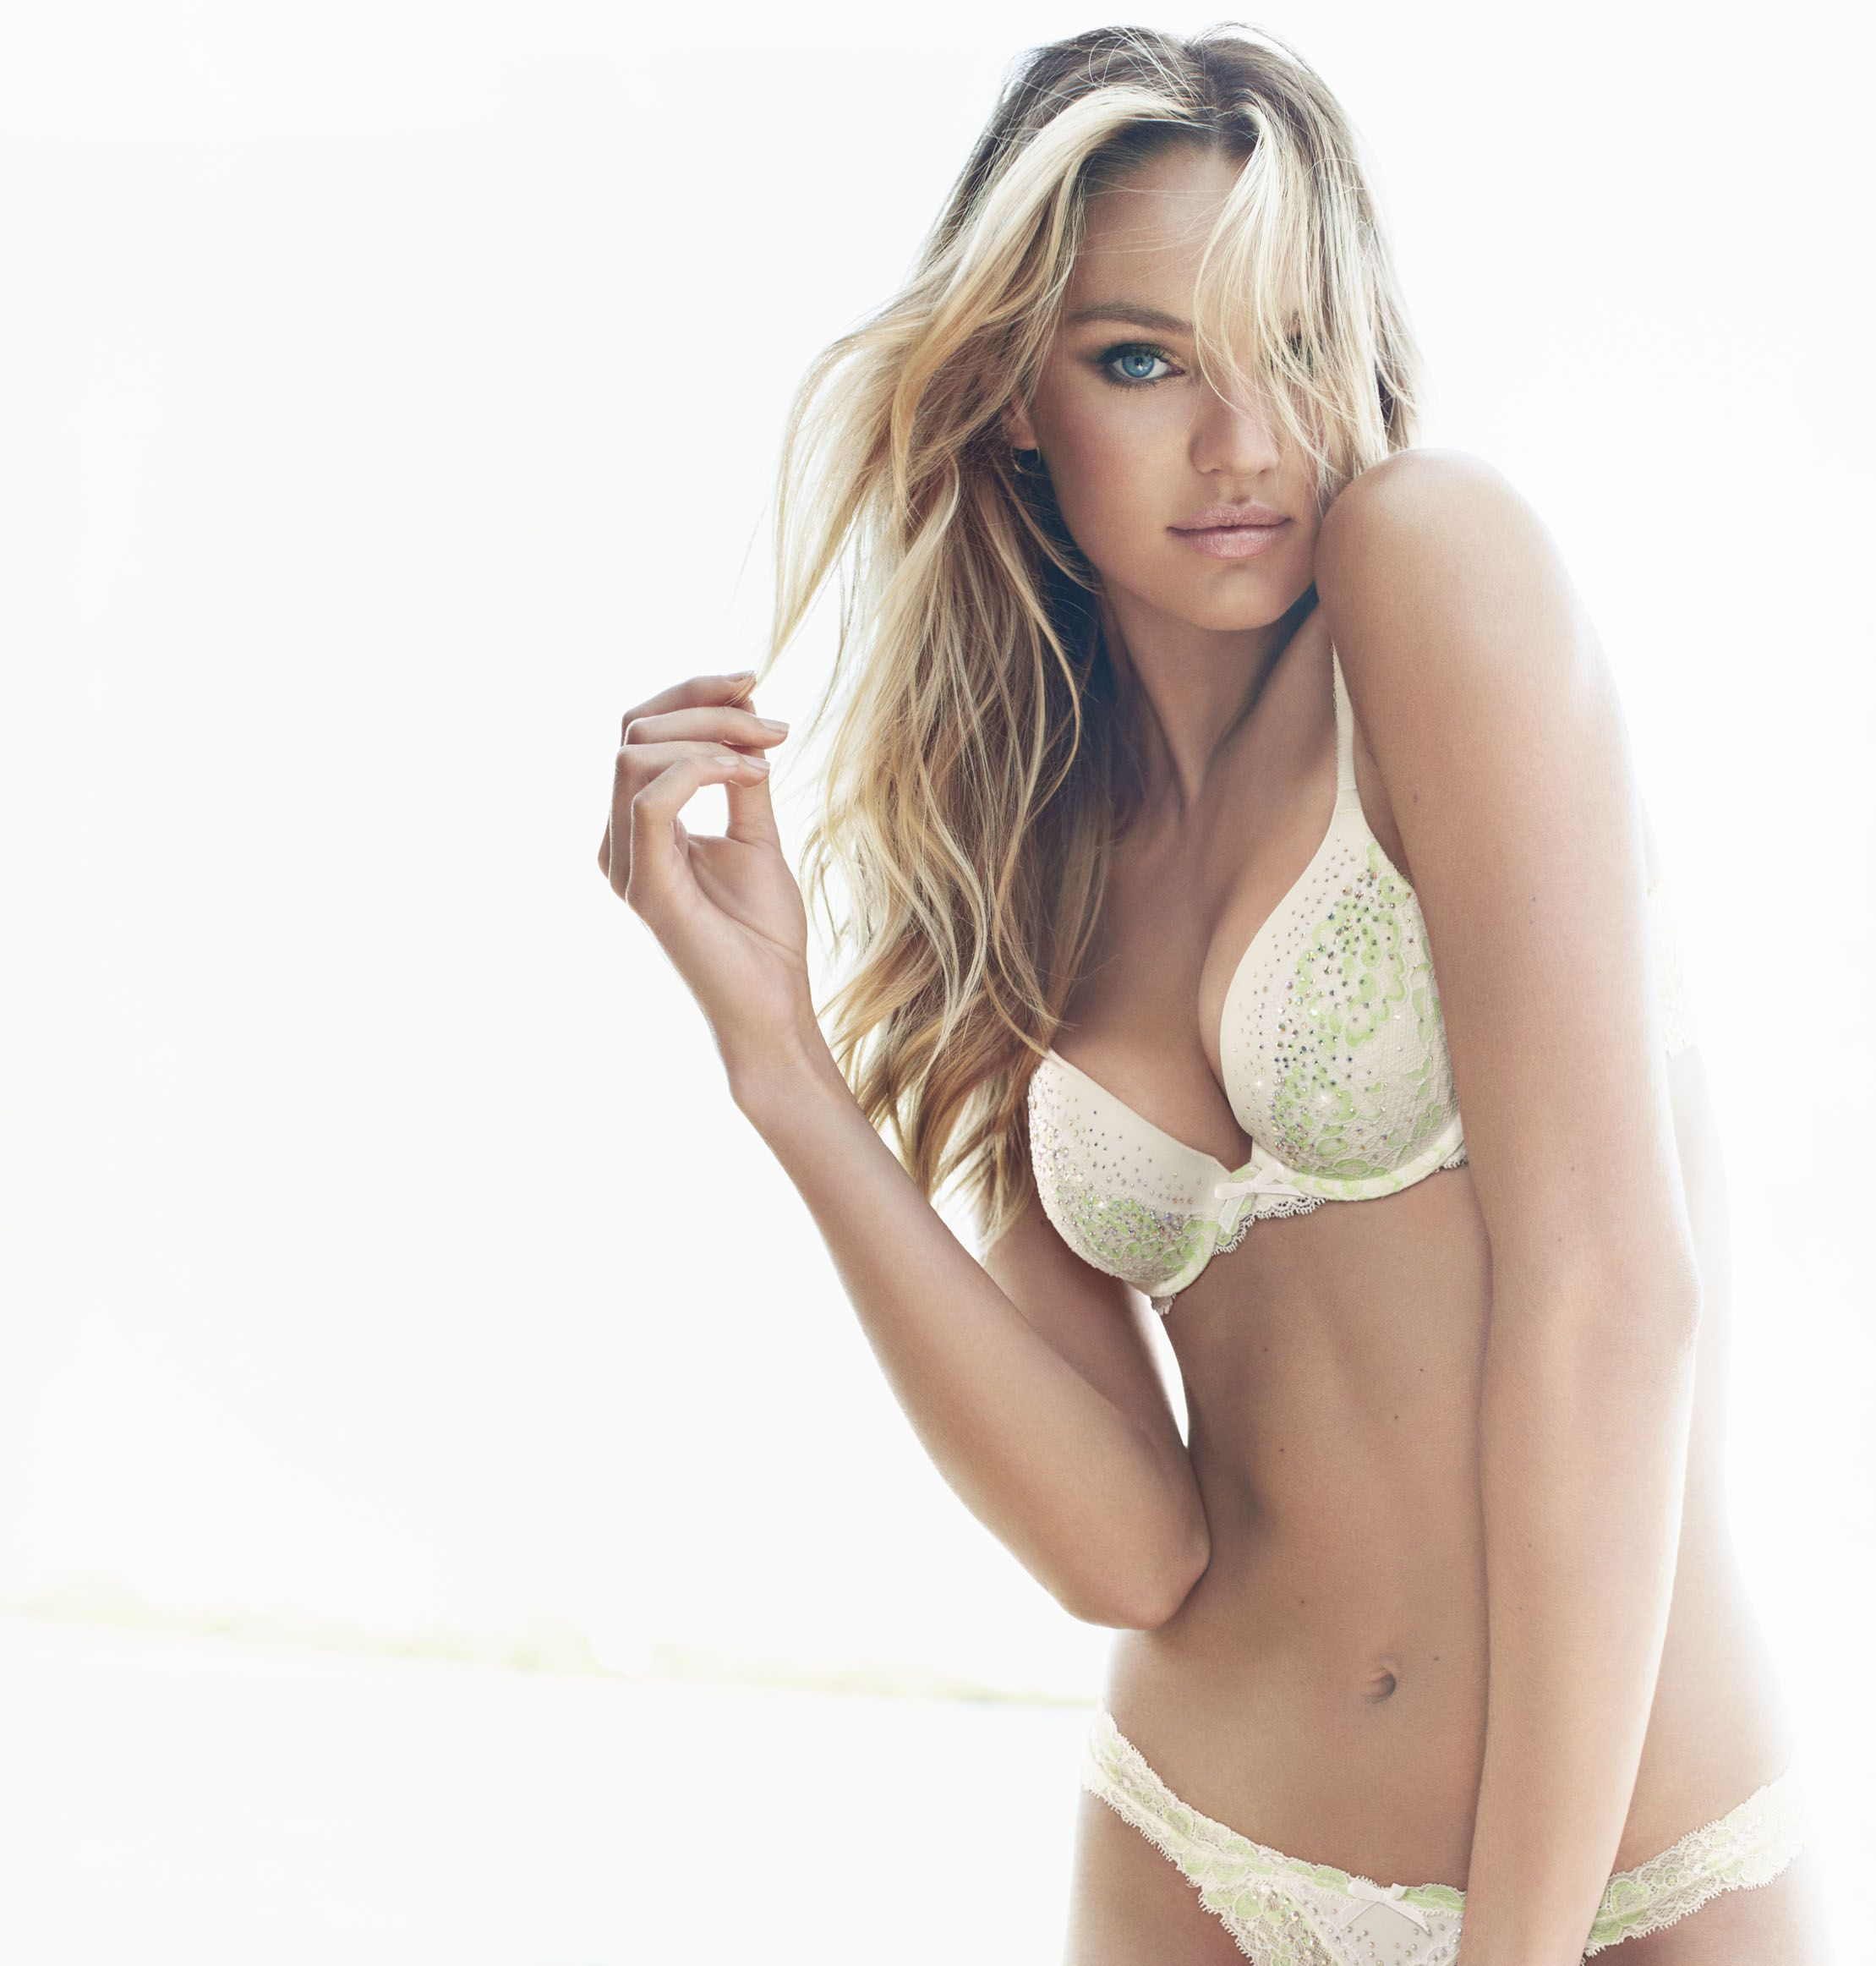 dream-angels-2013-candice-swanepoel-push-up-bra-victorias-secret-hi-res